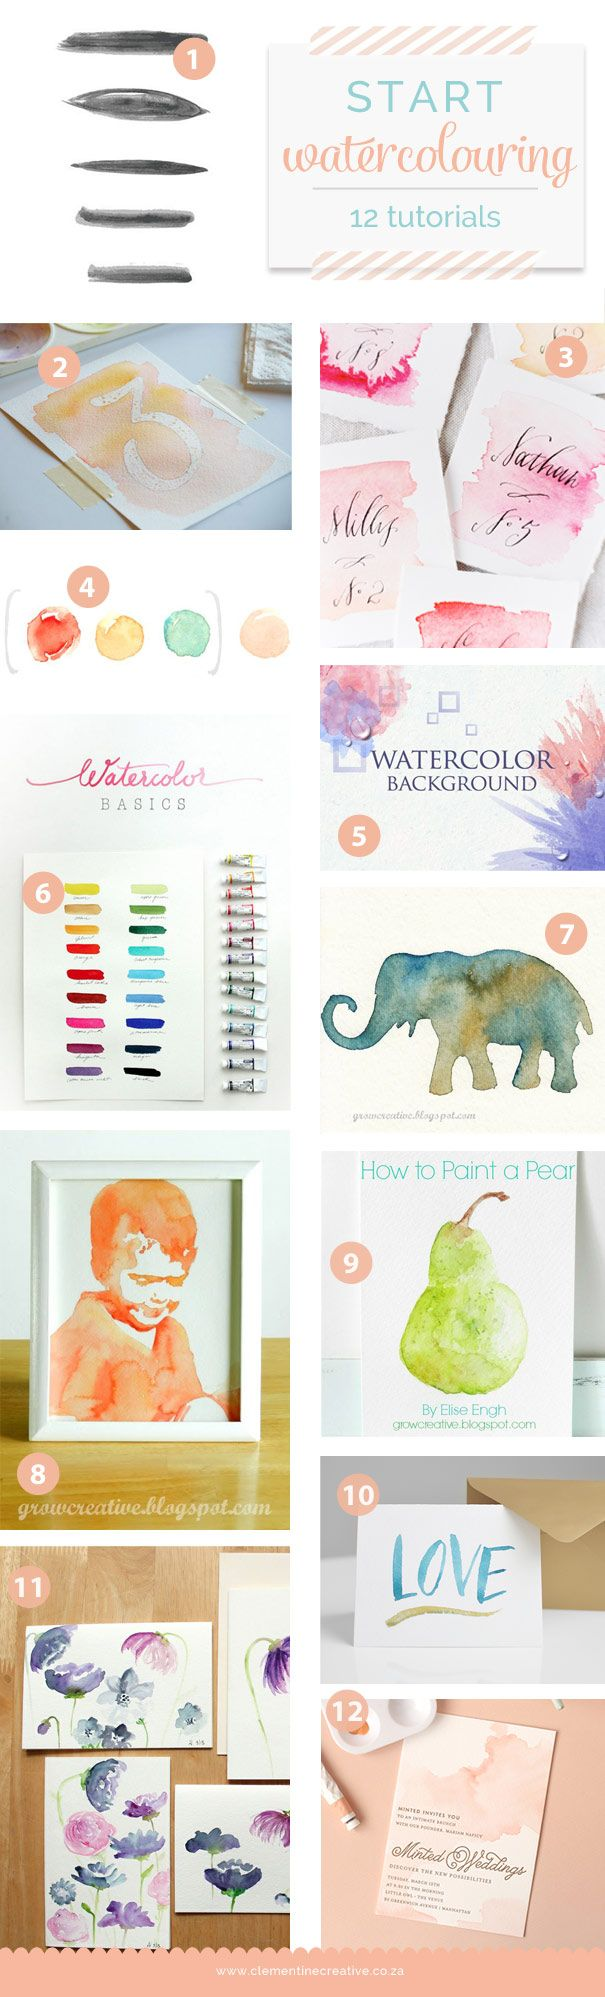 12 easy watercolour tutorials